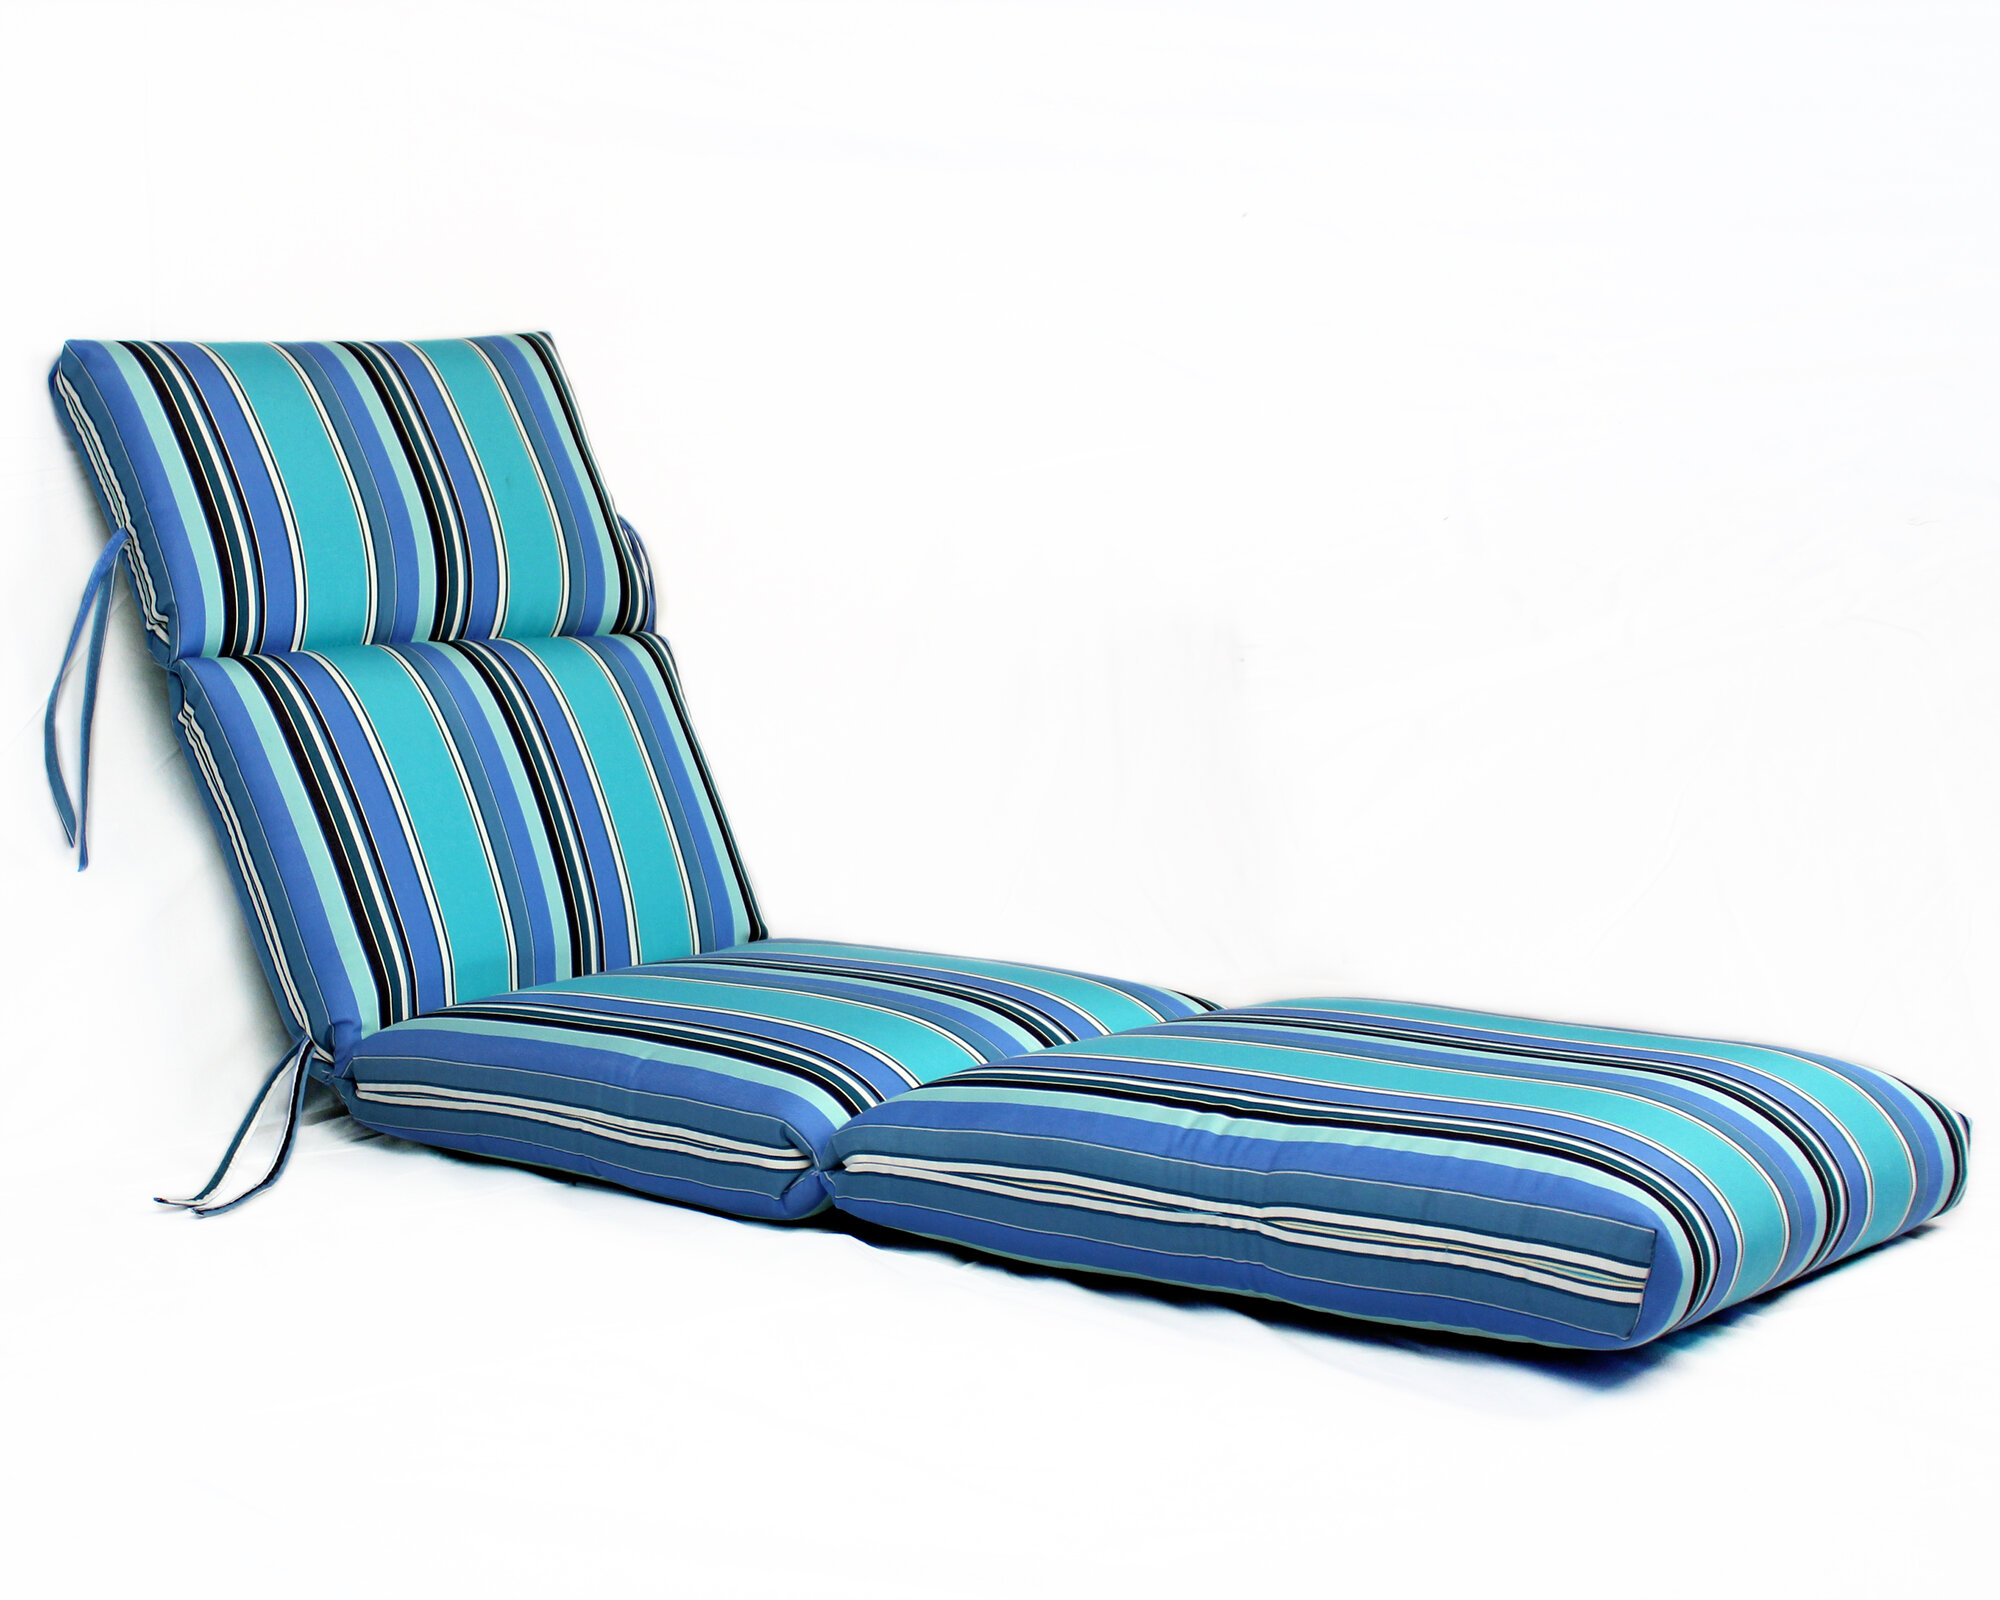 Comfort clas outdoor sunbrella chaise lounge cushion ebay for Chaise longue cushions